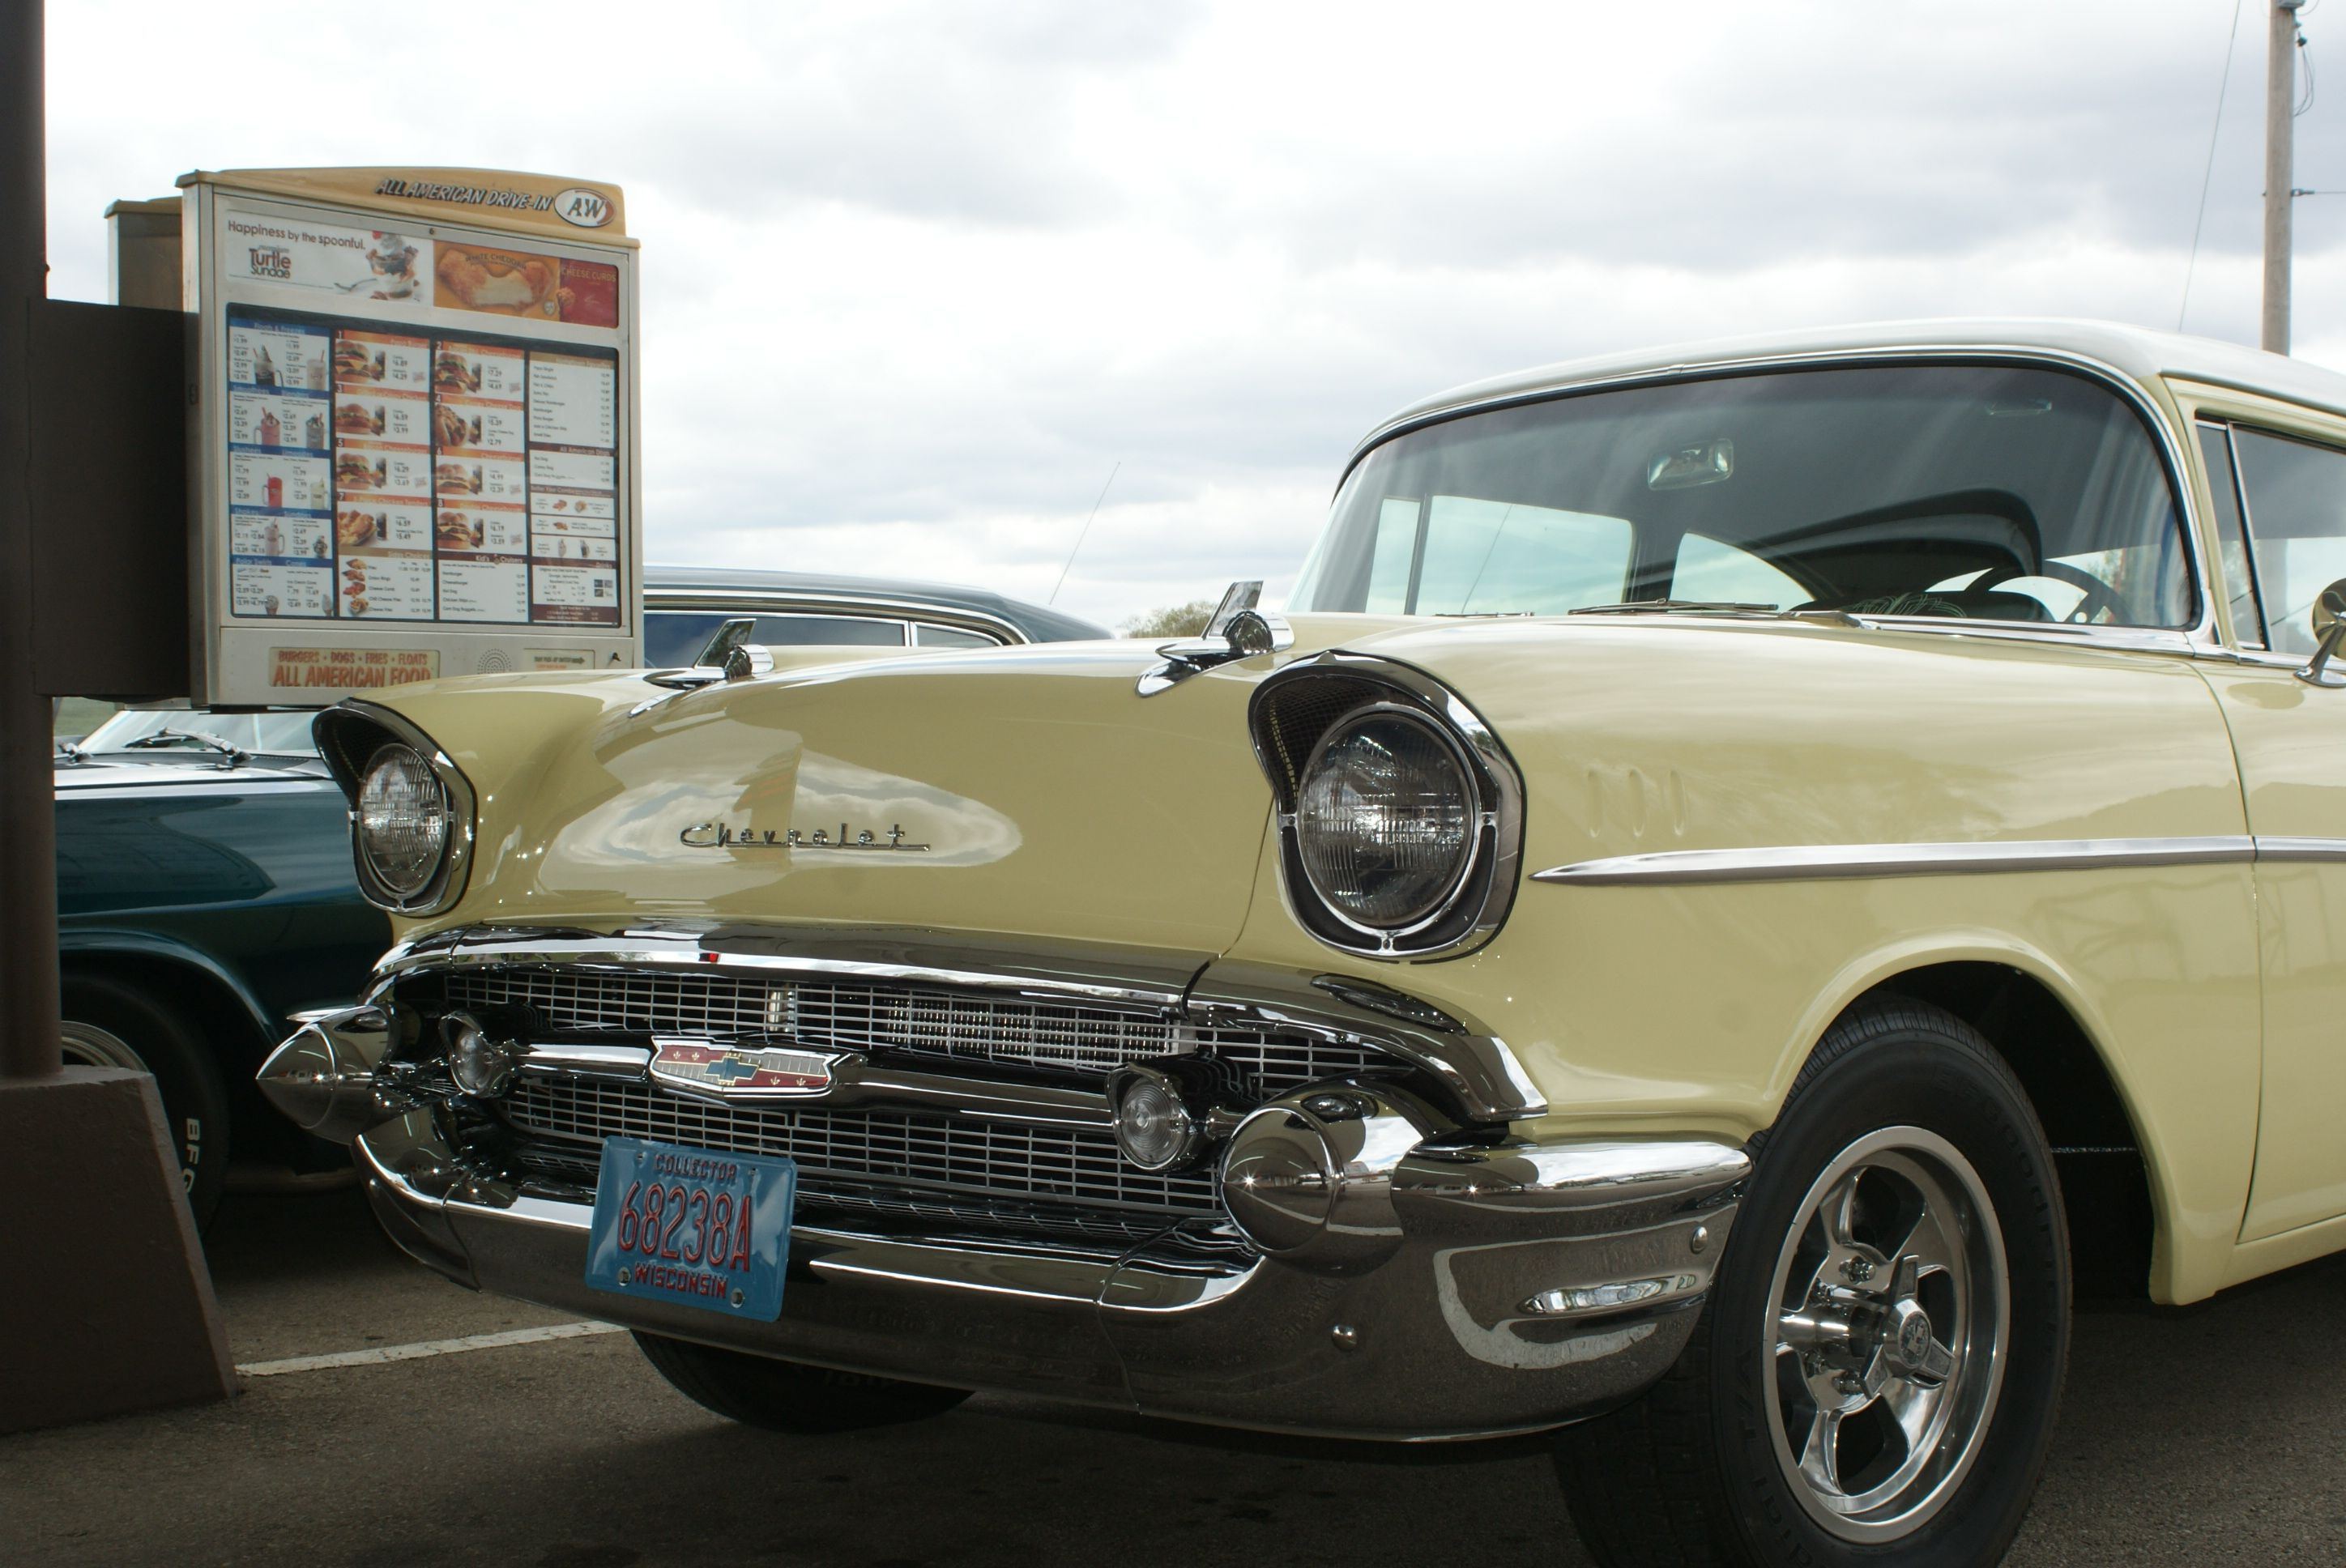 2014-Classic Cars stopped in at the A&W Drive-In on their way to ...